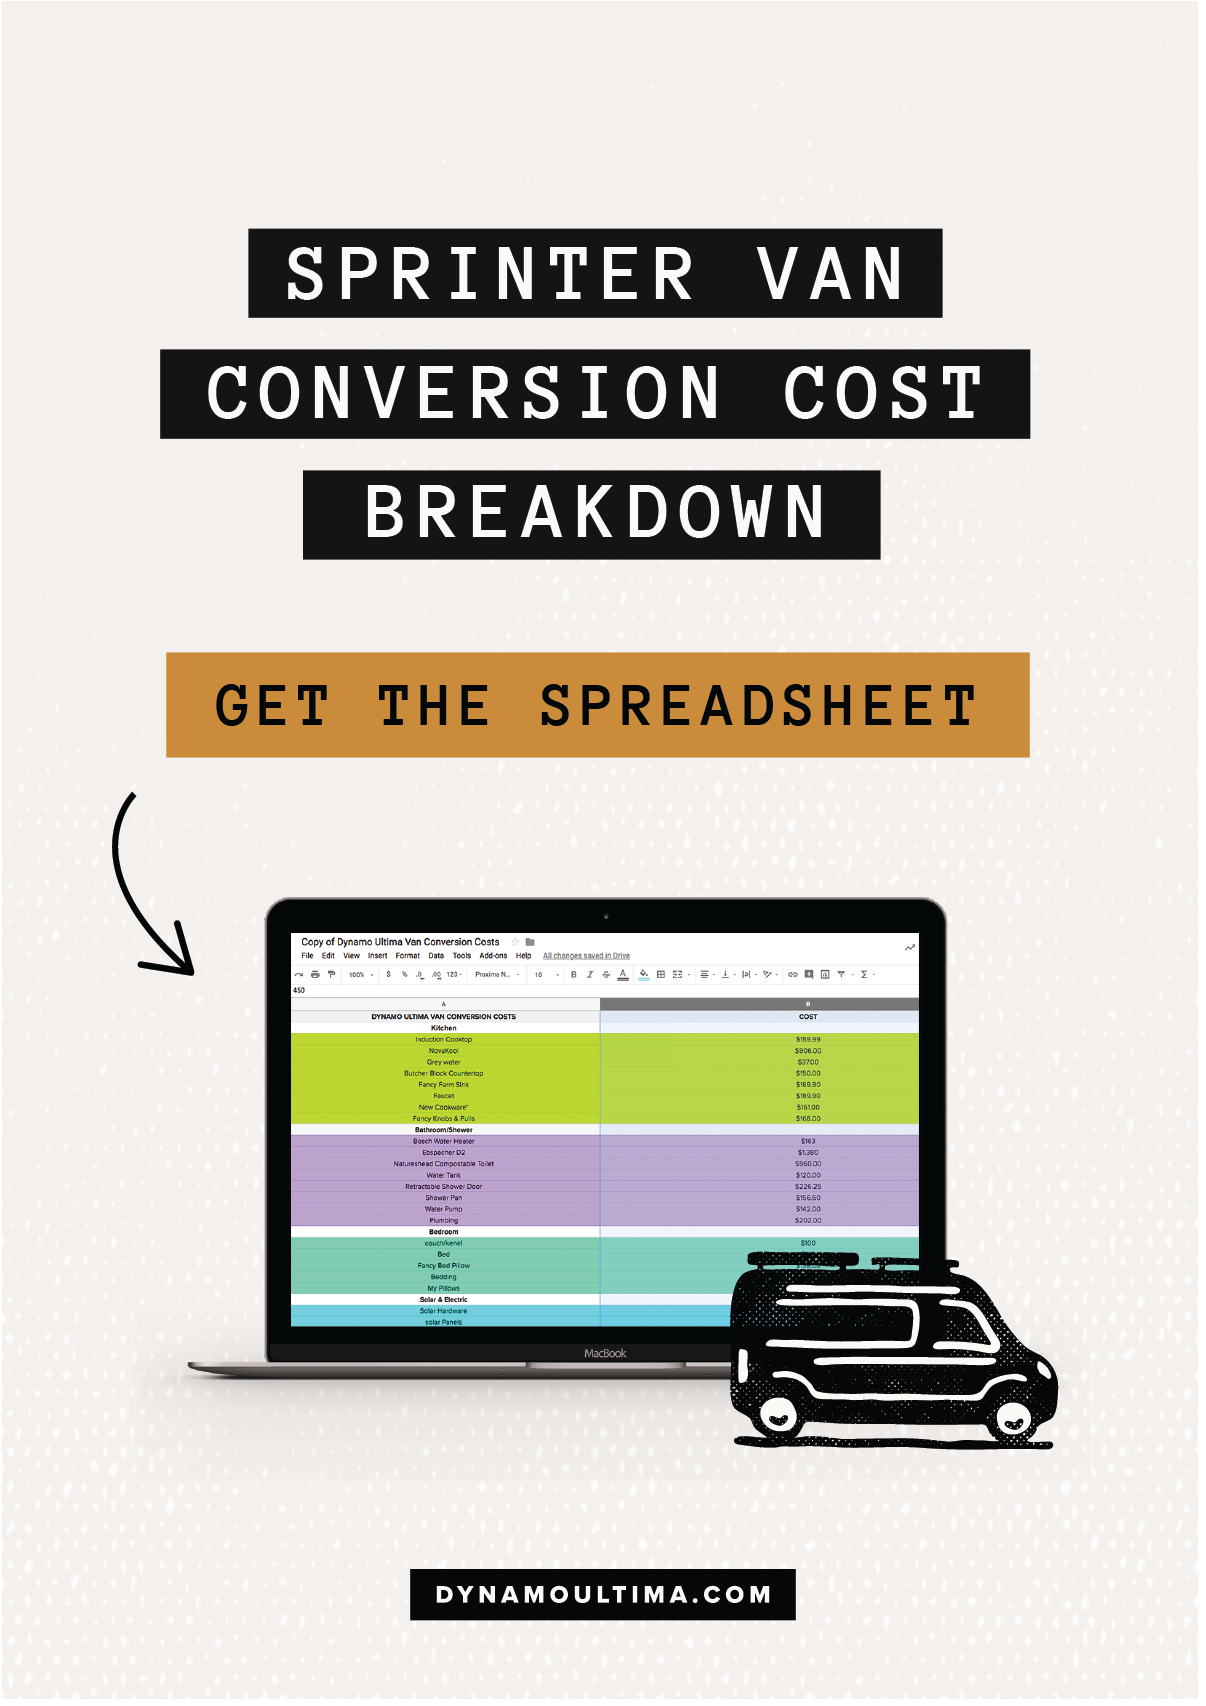 Sprinter Van Conversion Cost Breakdown Get Our Free Copy And Paste Spreadsheet To Track Your